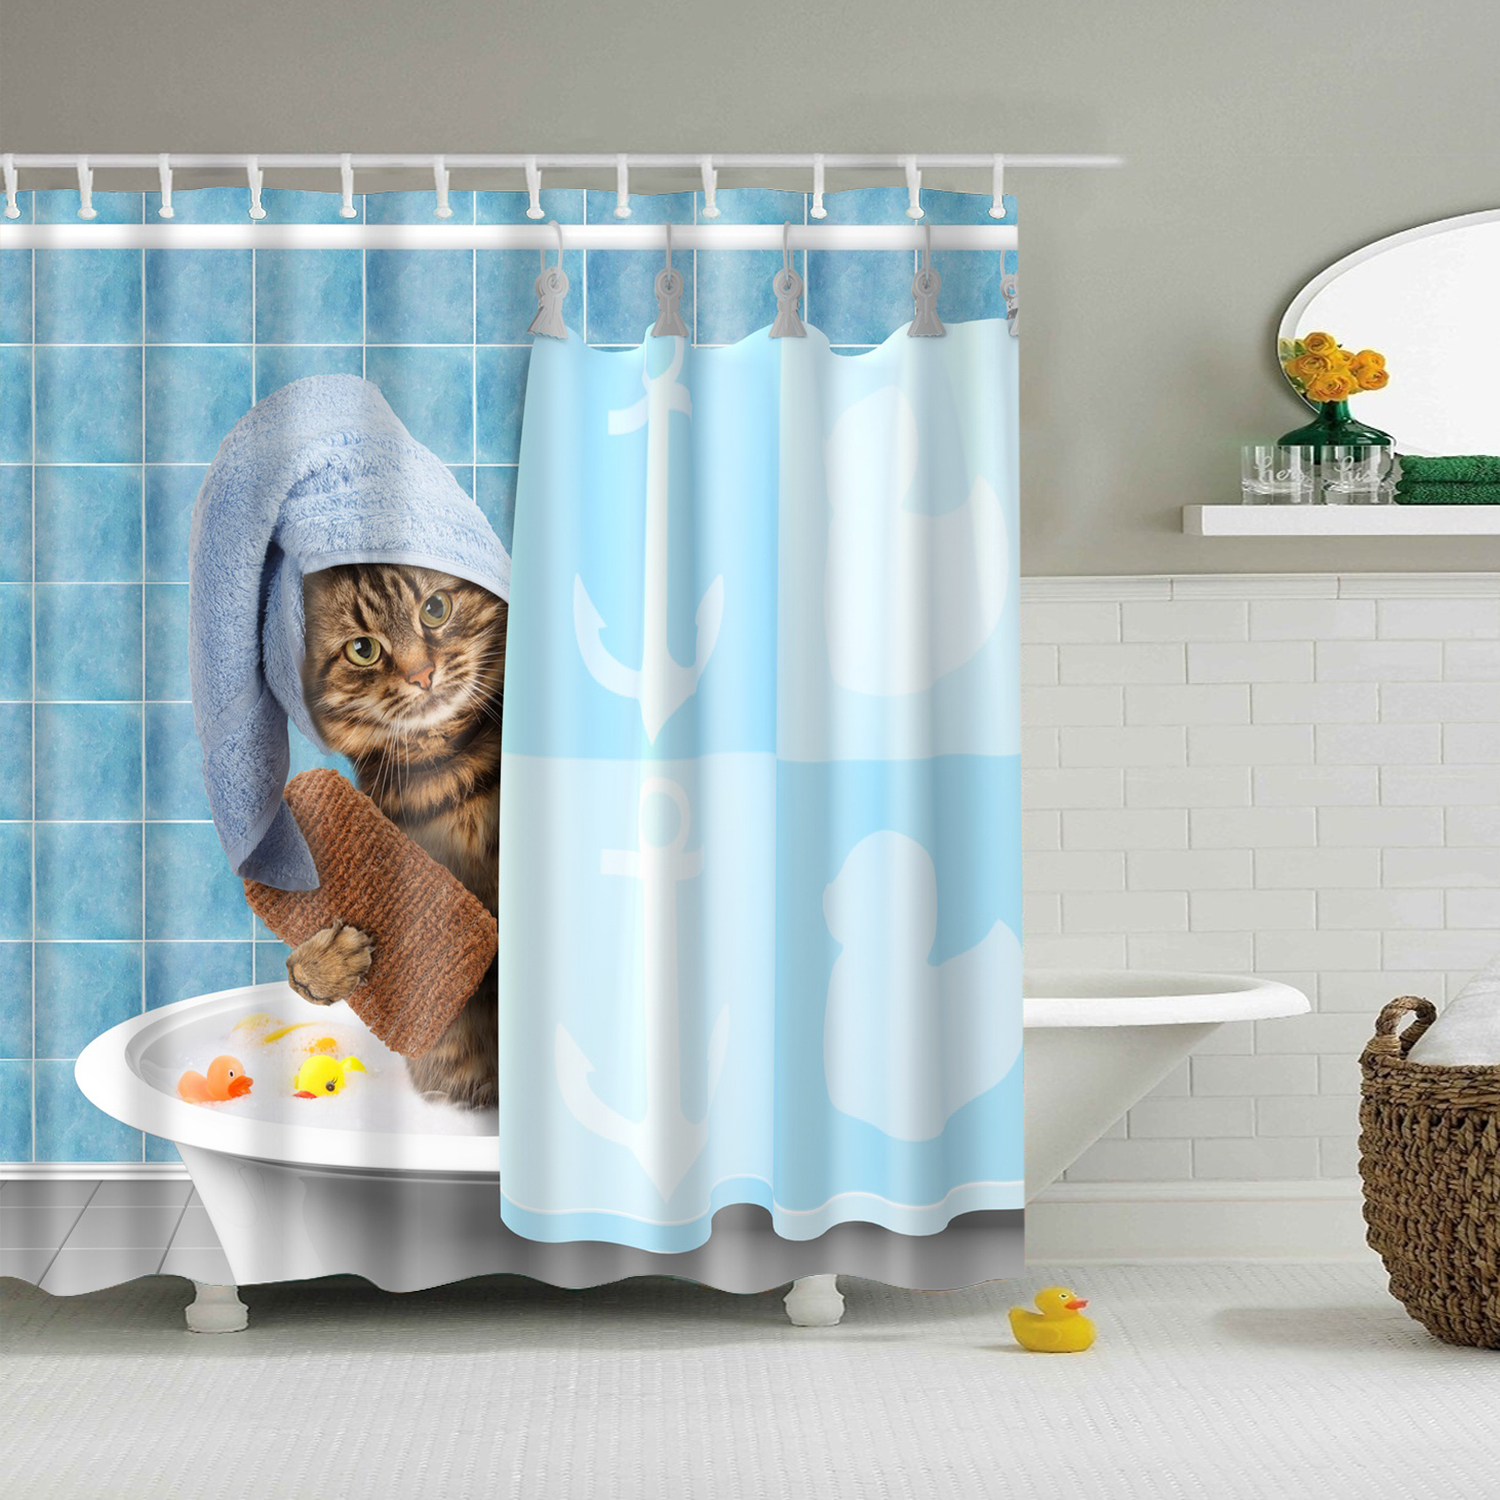 Details About Animals Funny Kitten Cat Bathing Decor Bathroom Shower Curtain 3d Printing 71 71